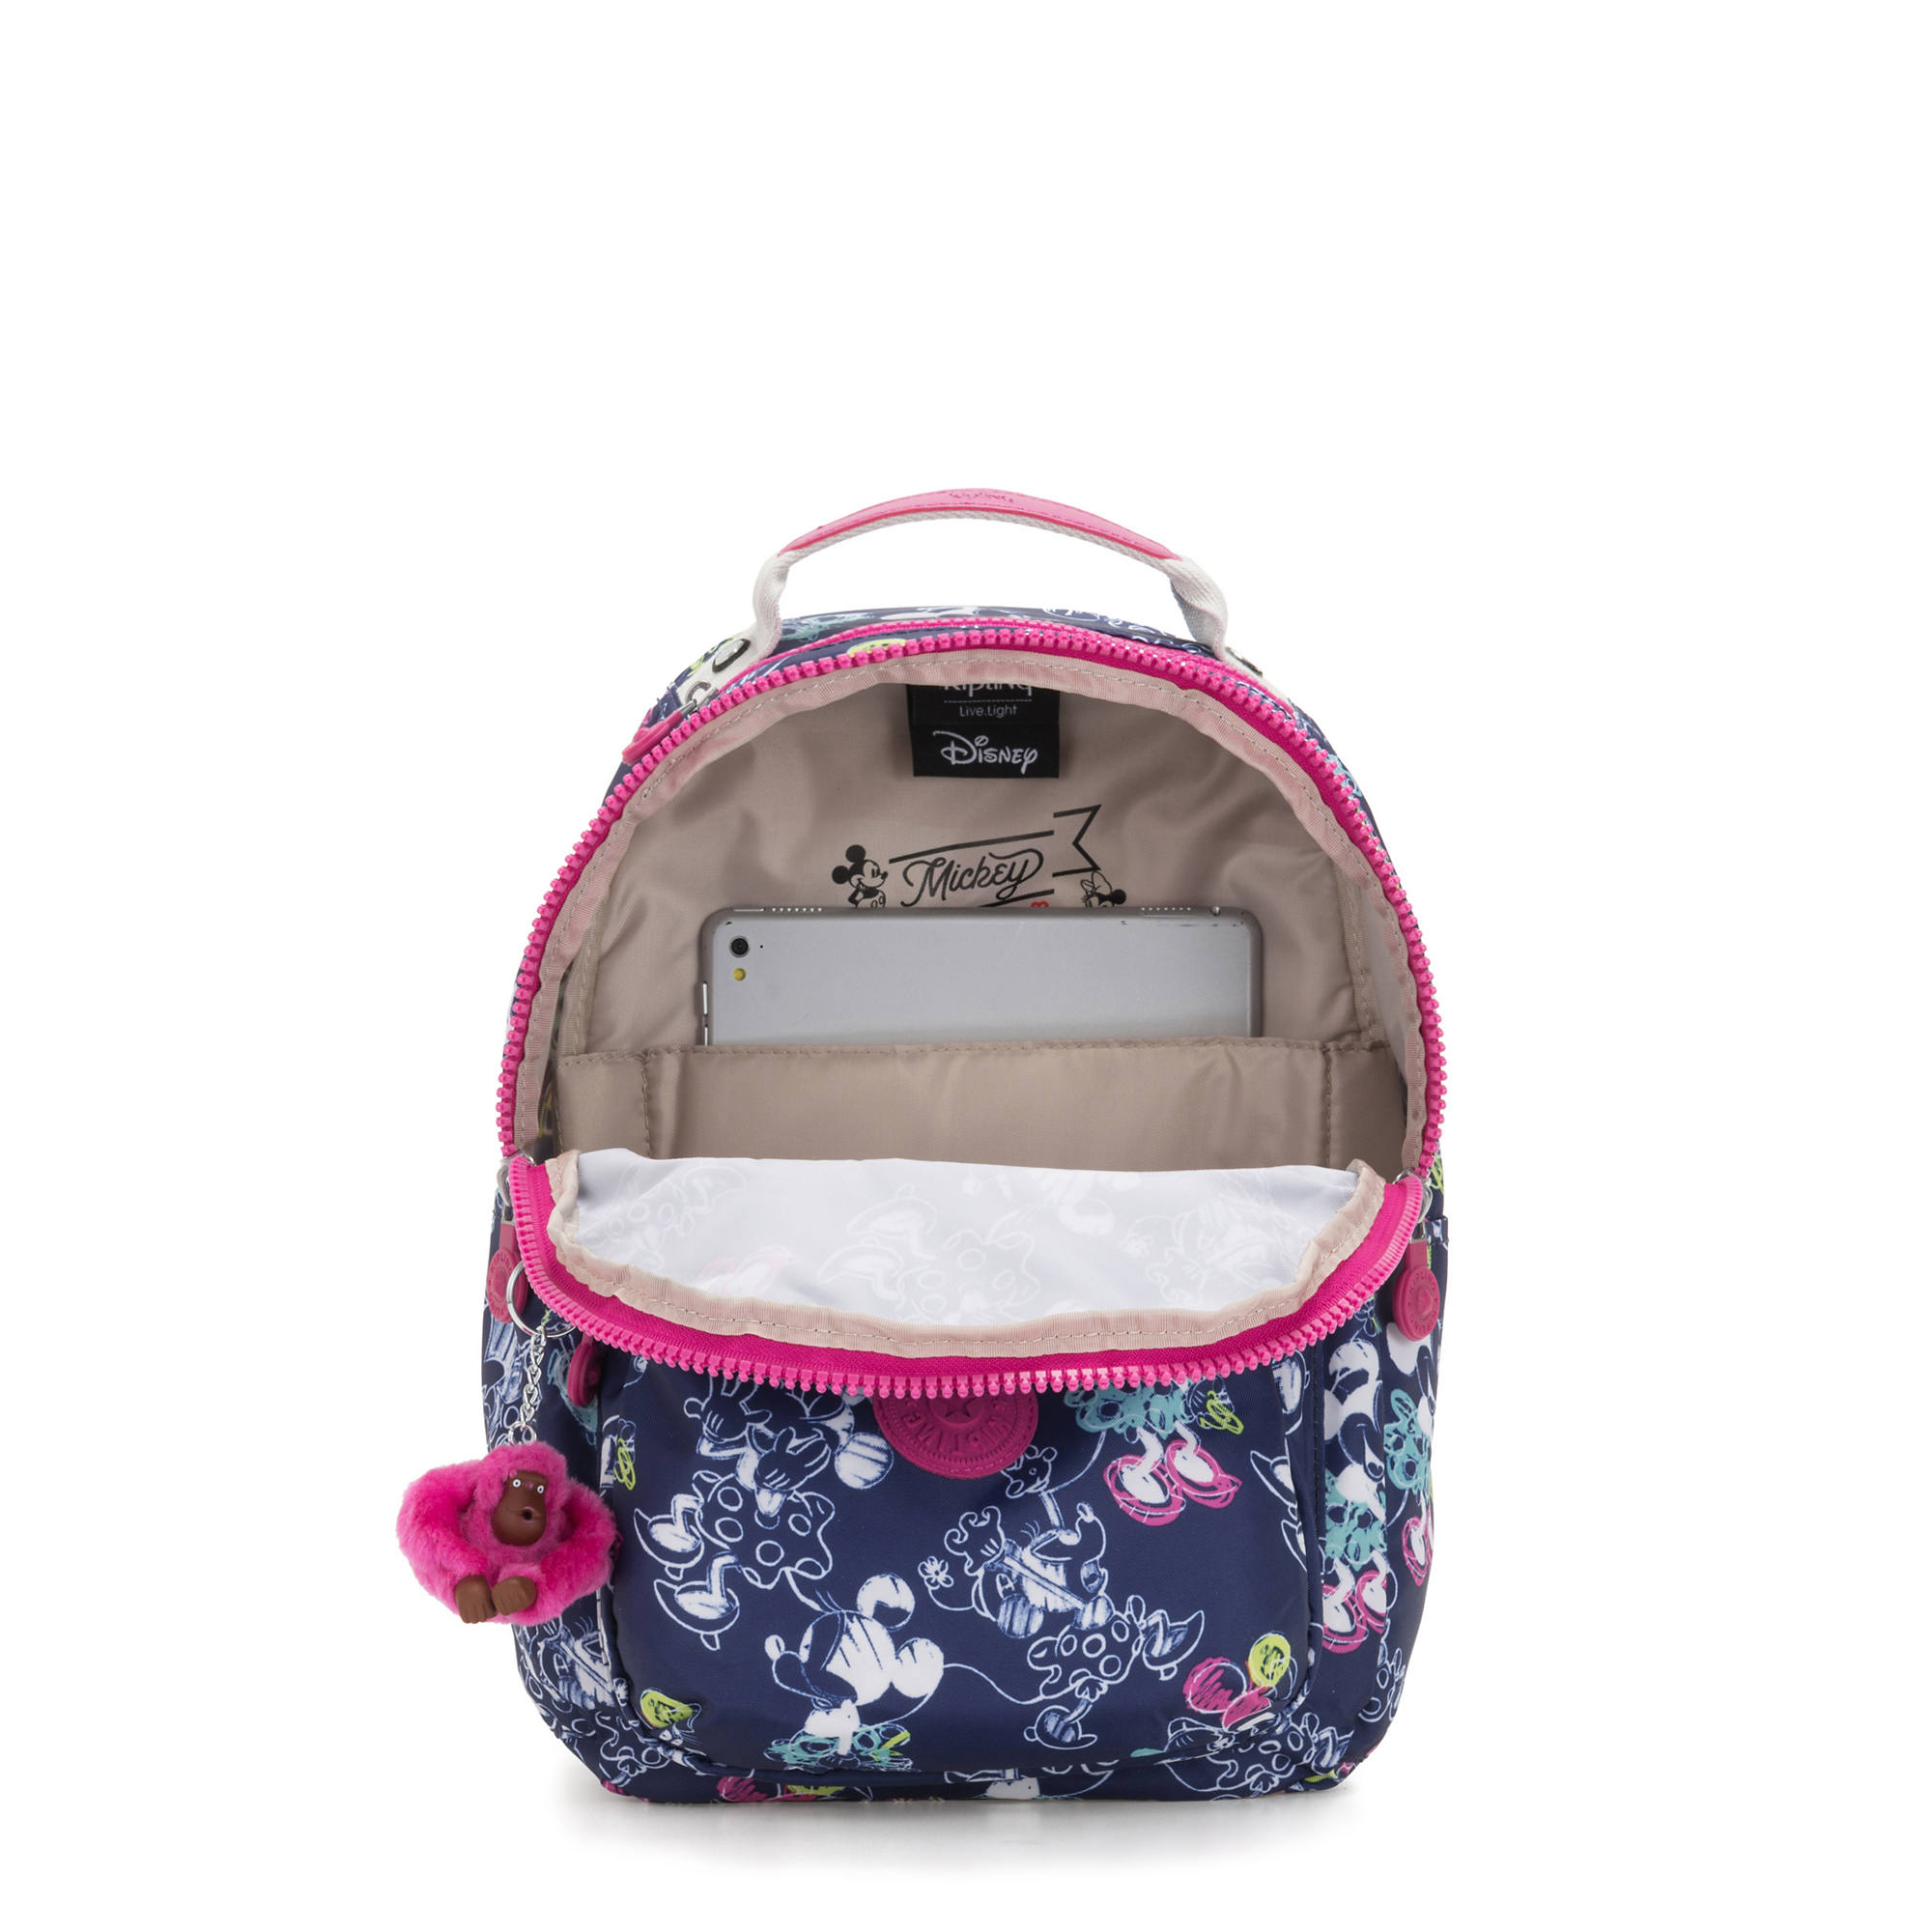 4415c5e47e0 Disney's Minnie Mouse and Mickey Mouse Seoul GO Small Backpack,DOODLE  BLUE,large